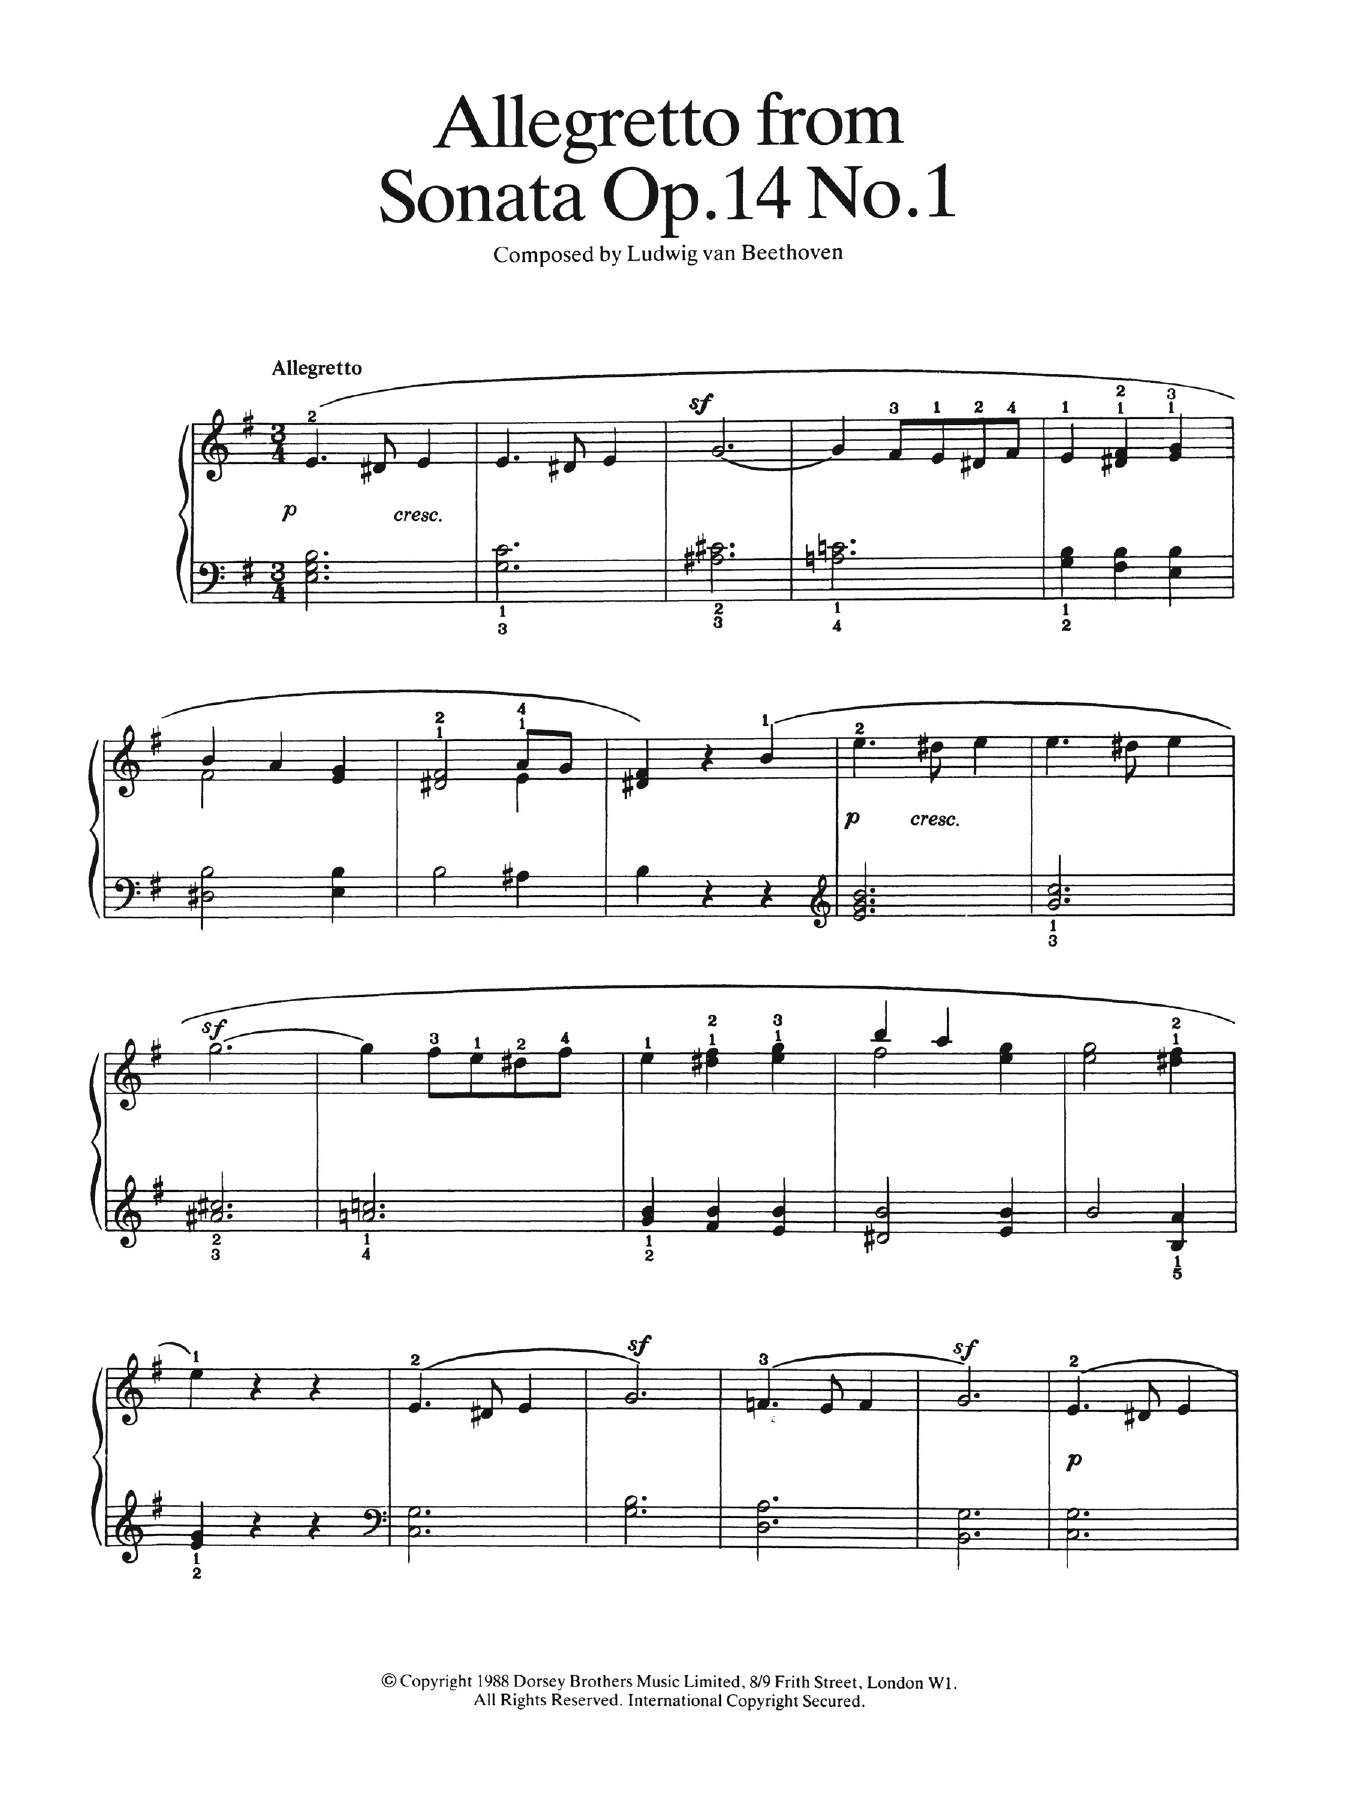 Allegretto from Sonata Op. 14, No. 1 Partituras Digitales